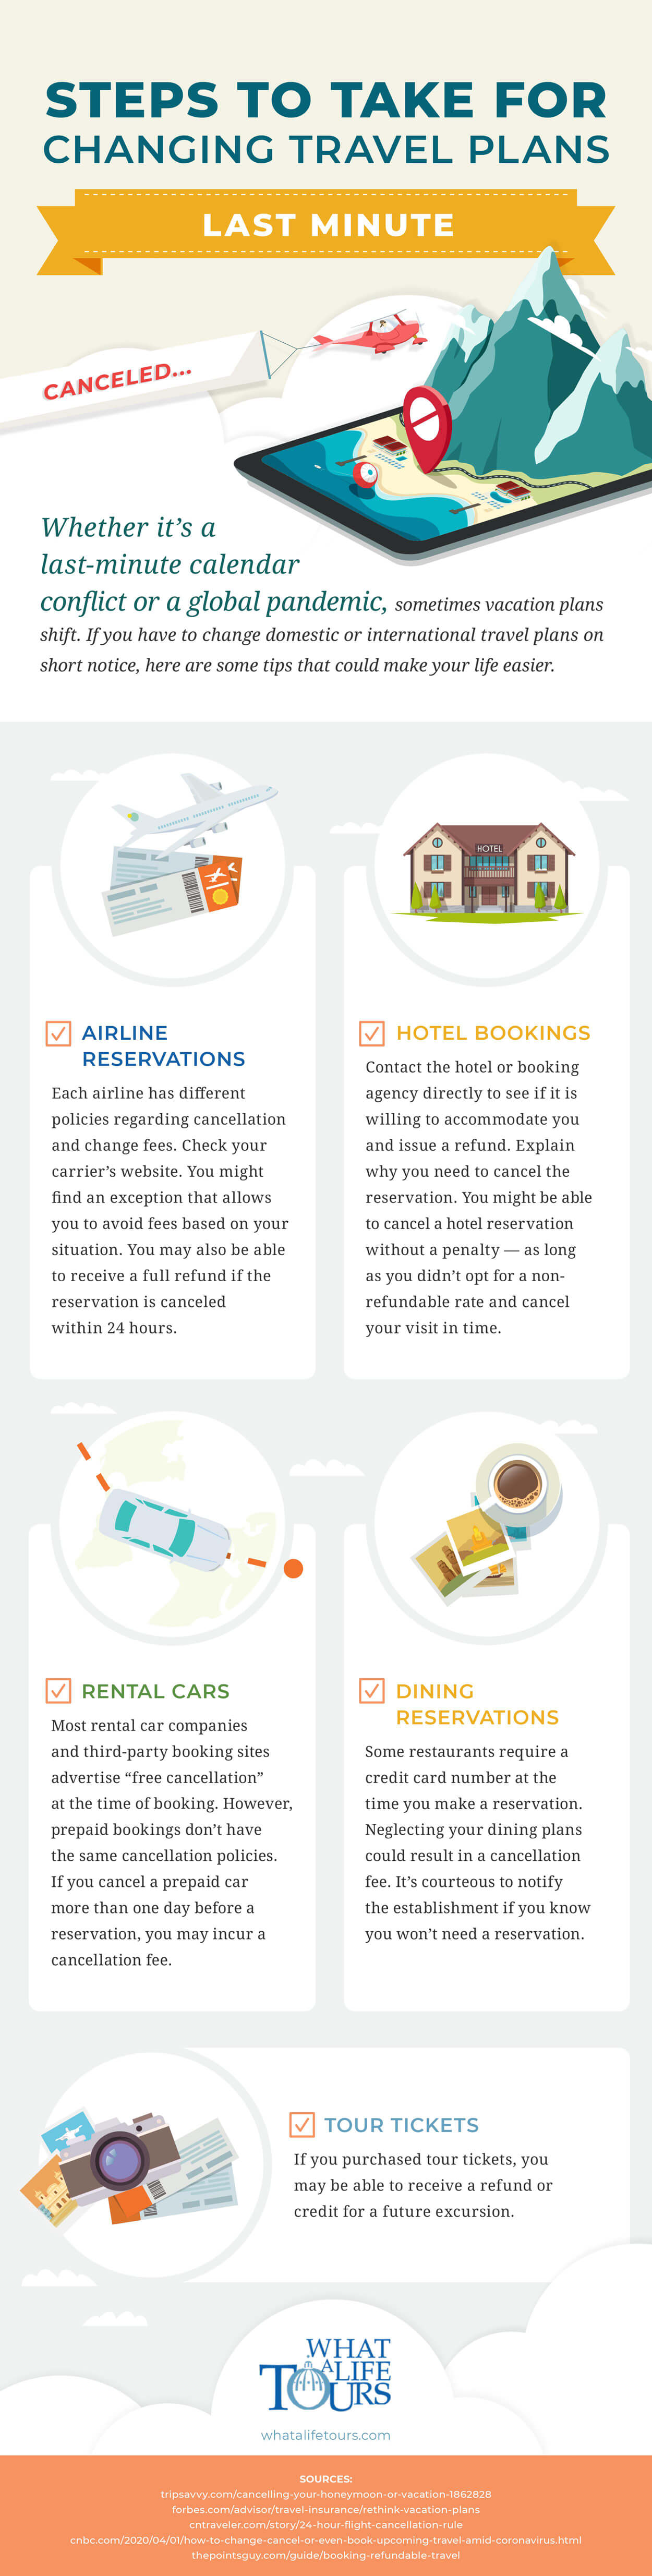 What-a-Life-Tours-infographic